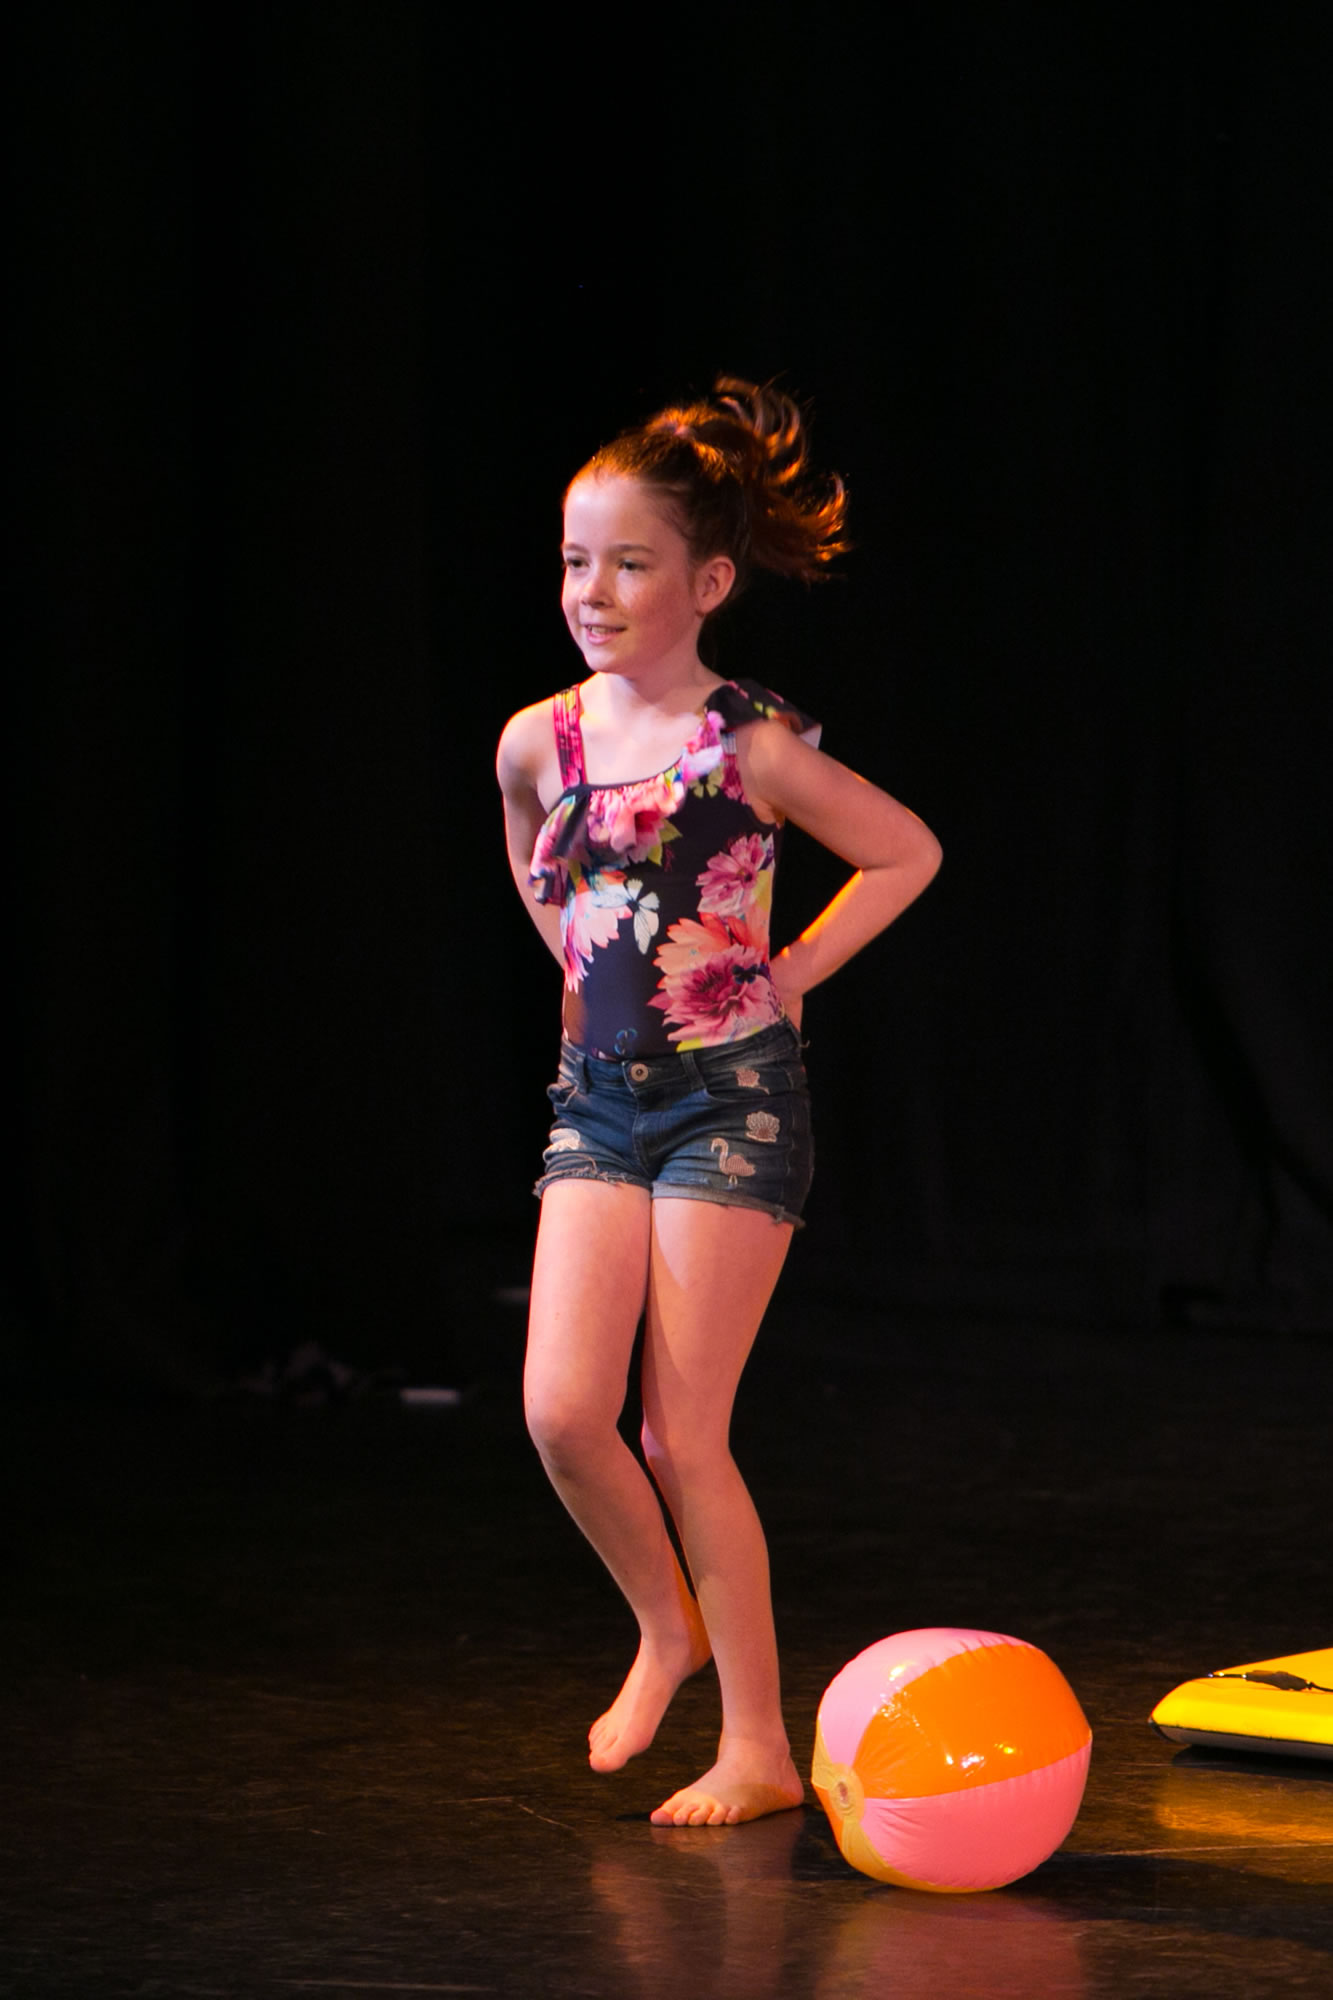 Hitchin_School_of_Dance_Show_2019-SM1_2042.jpg